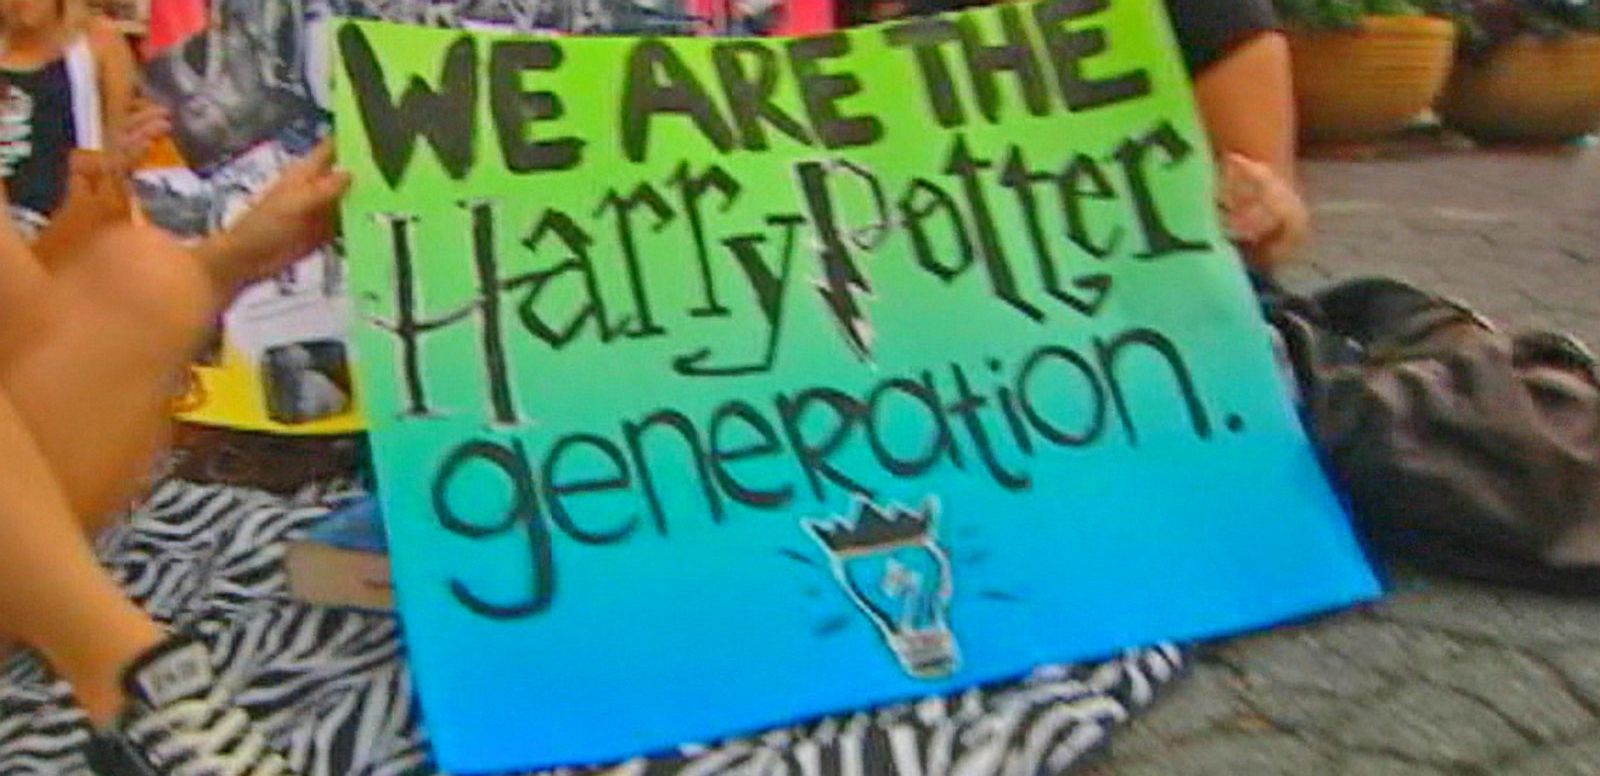 VIDEO: New Harry Potter Book Excites Fans of the Popular Kids Fiction Series